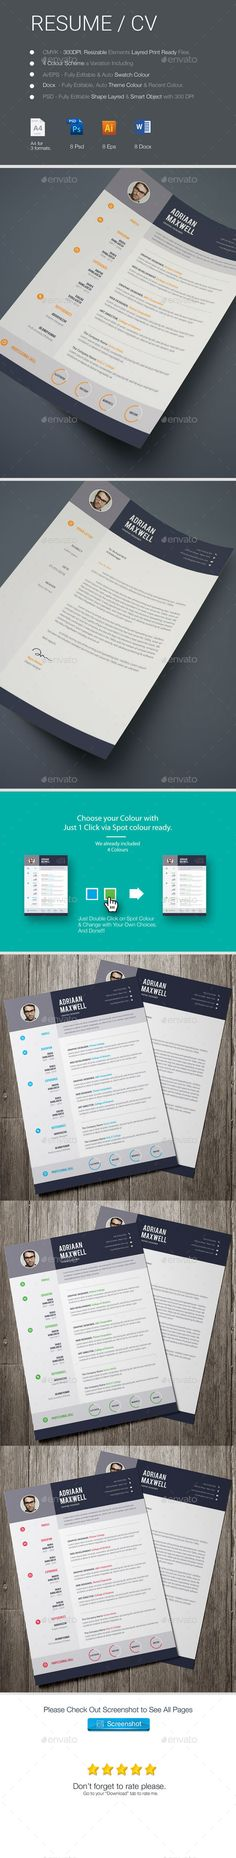 2 Pages #Resume / CV - Resumes Stationery Download Here: https://graphicriver.net/item/2-pages-resume-cv/12694875?ref=suz_562geid